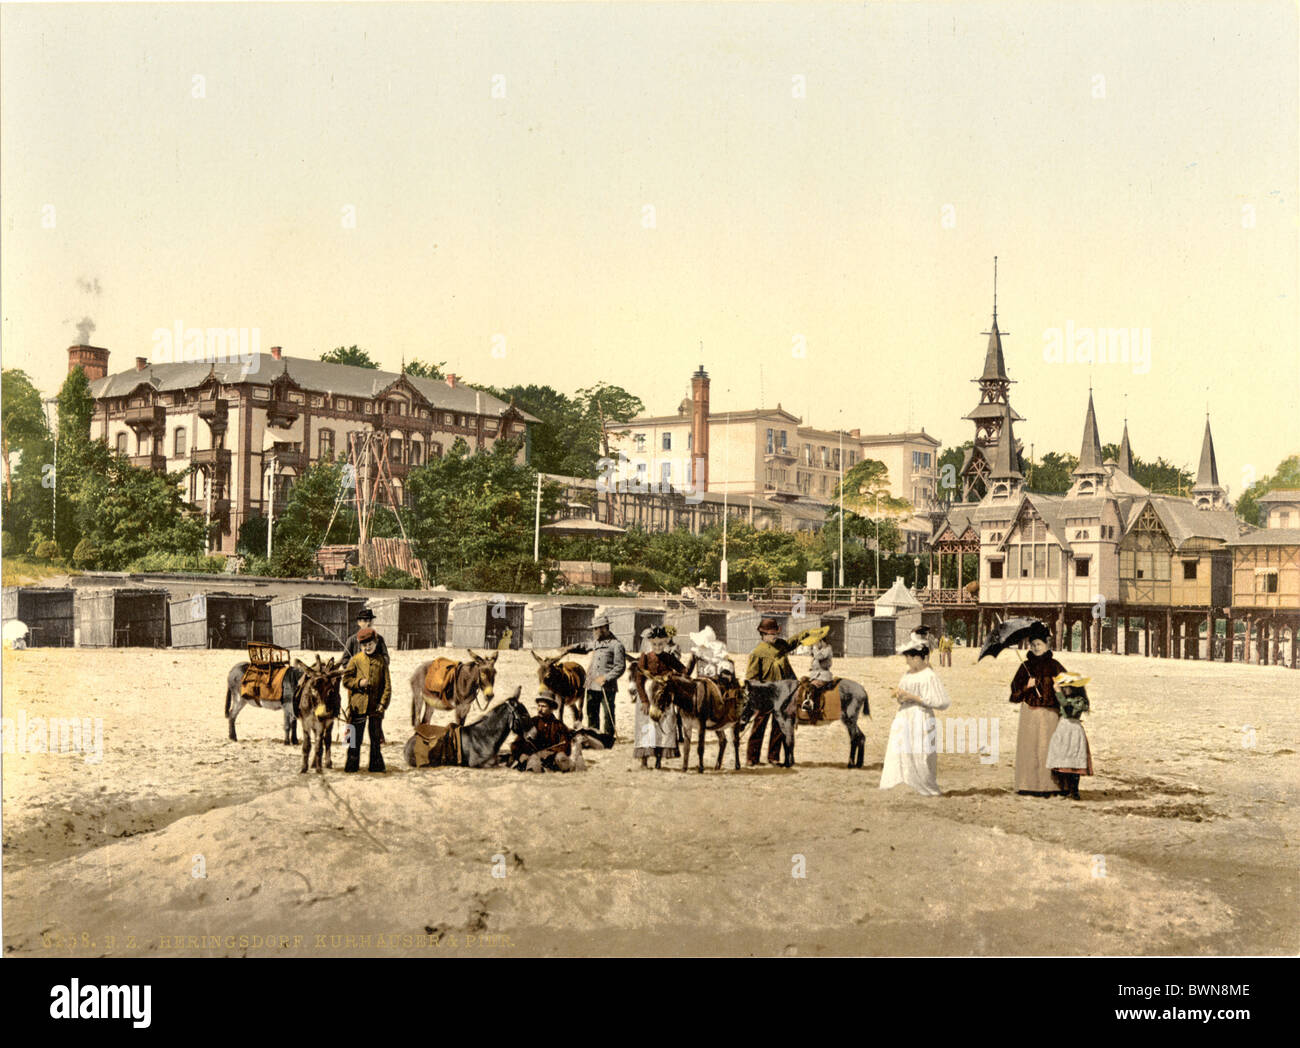 Pier Heringsdorf Usedom Pomerania Germany Europe German Empire Photochrom about 1900 history historical his - Stock Image